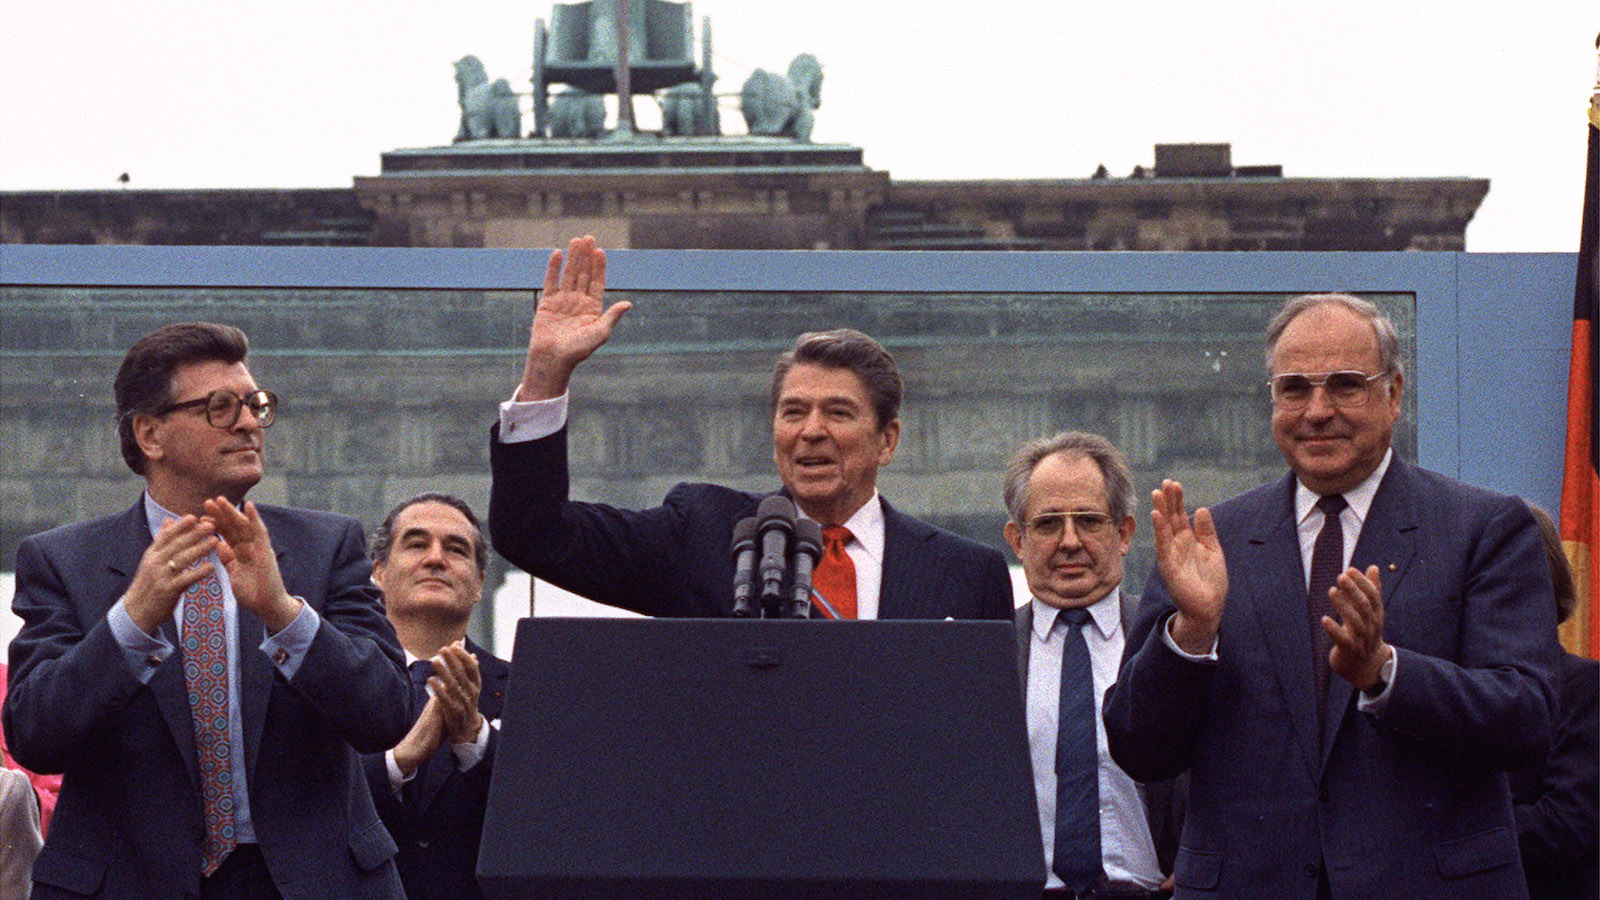 """** FILE ** In this June 12, 1987 file photo U.S. President Reagan acknowledges the crowd after his speech in front of the Brandenburg Gate in West Berlin,  where he said """"Mr. Gorbachev, tear down this wall!'. On Tuesday June 12, 2007, It will be the 20th anniversary of the moment seen by many to be the start of a new age for politics.  Applauding Reagan are West German Chancellor Helmut Kohl, right, and West German Parliament President Philipp Jenninger, left.   (AP PHOTO/Ira Schwartz)"""